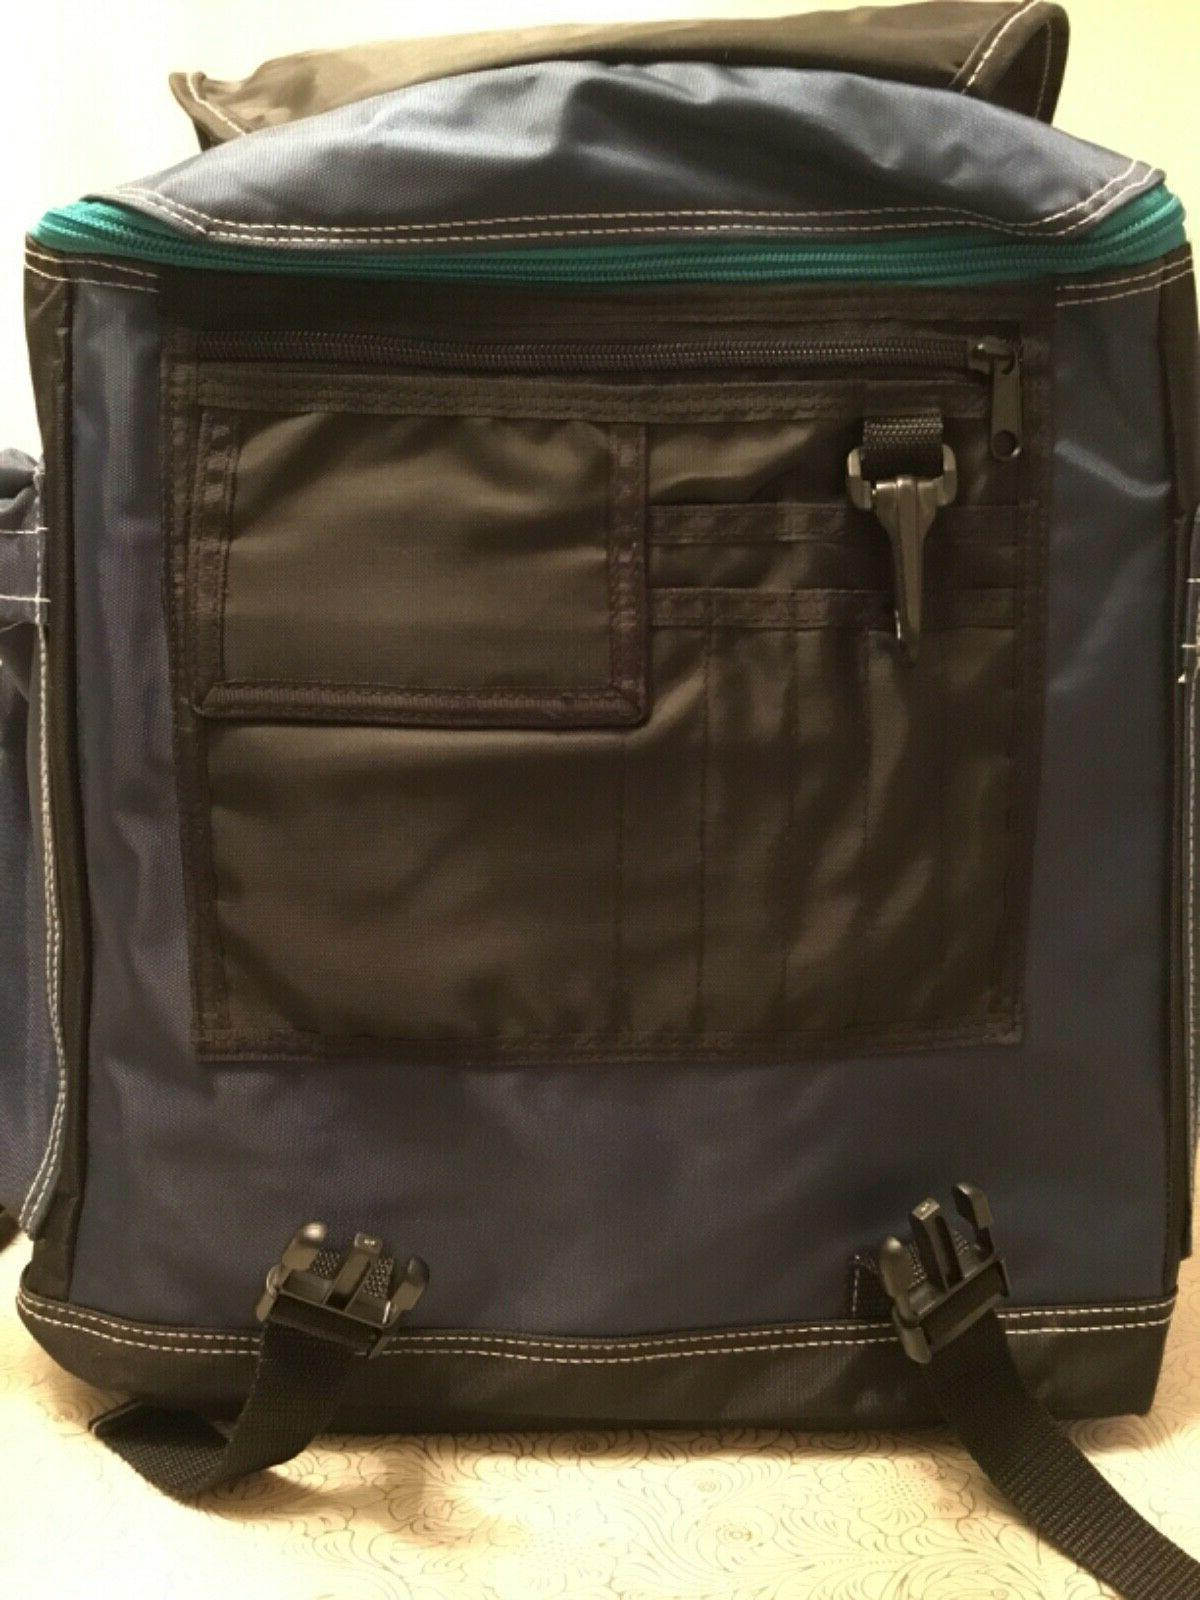 Seattle Merchandise MLB Sports BackPack w/o Tags